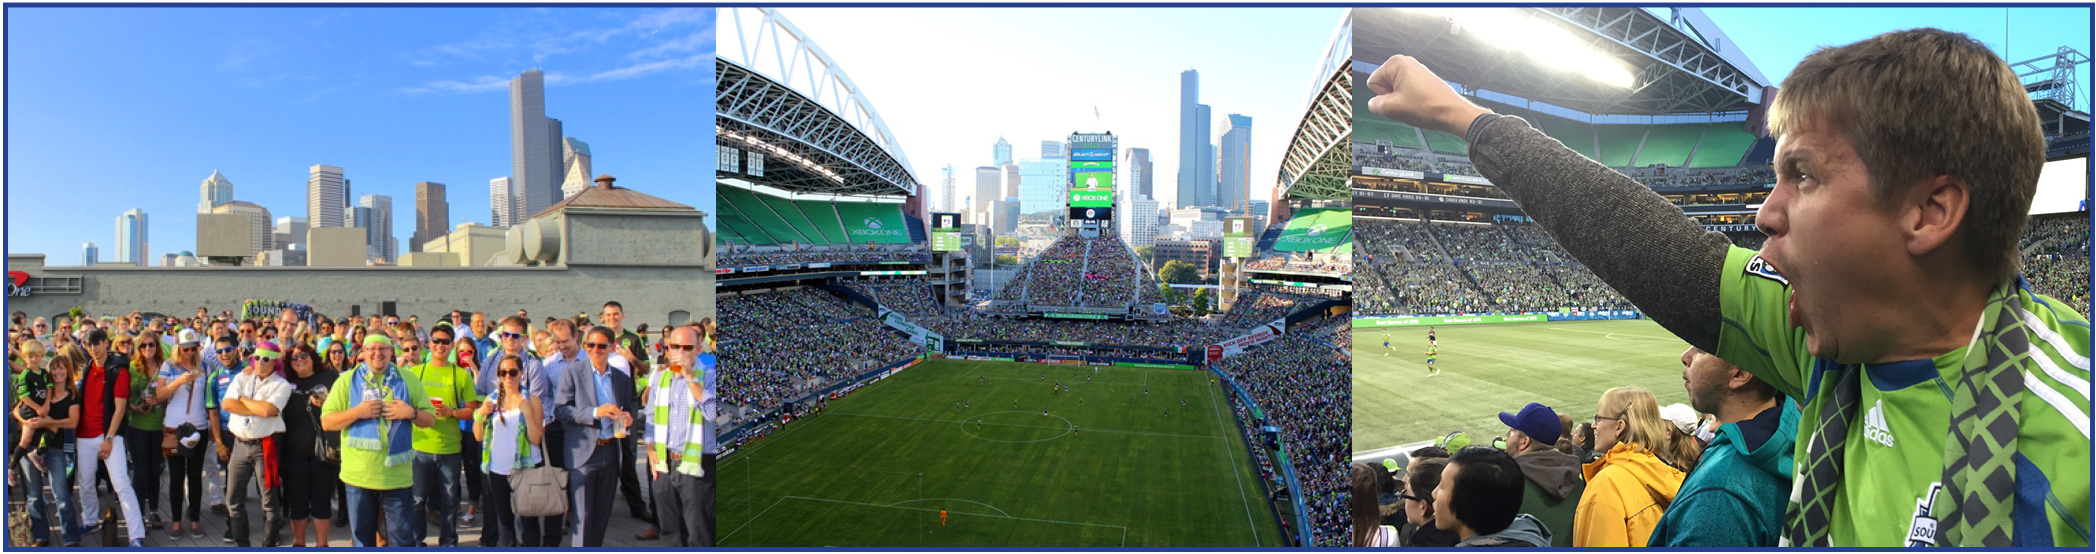 Sounders Day Event Image